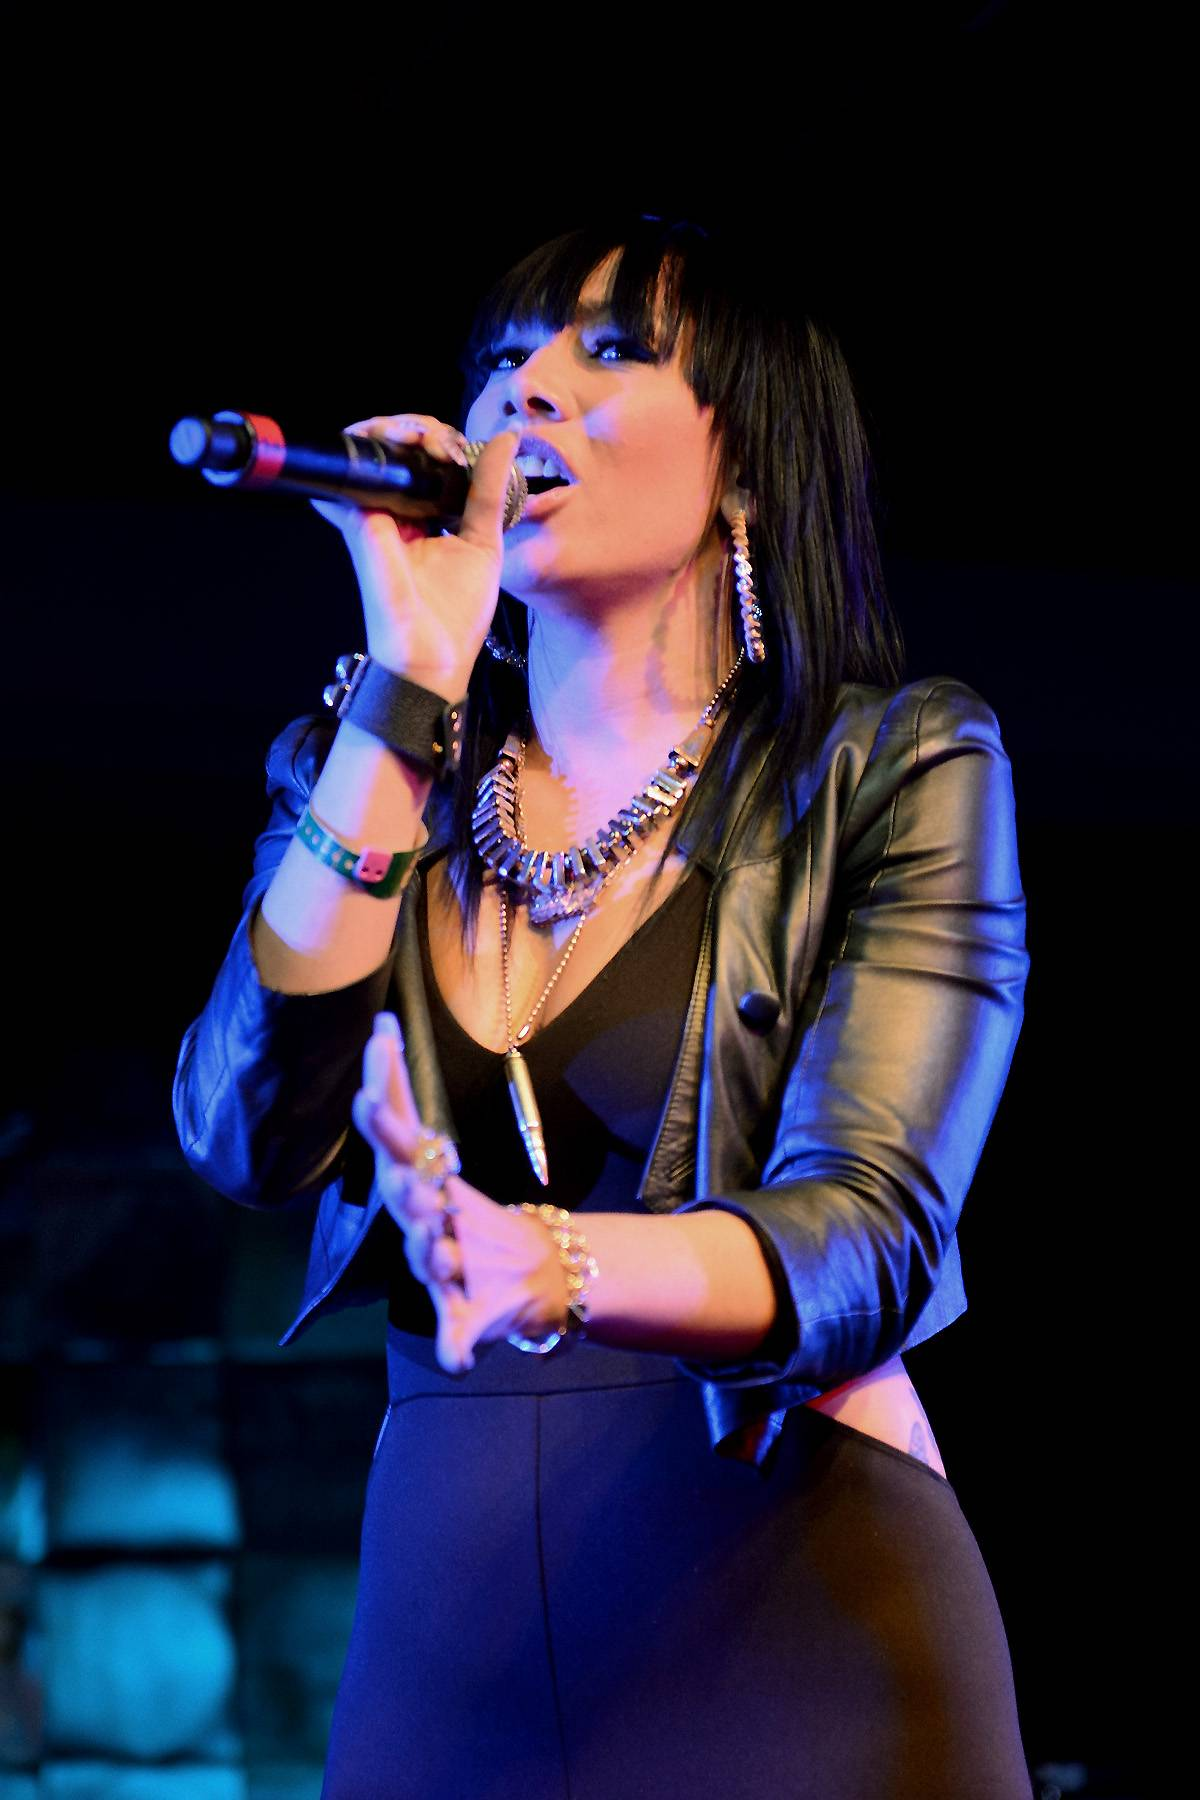 Best New Artist: Bridget Kelly - With heartfelt lyrics and outstanding vocals, this Roc Nation diva is poised to take over.  (Photo: Daniel Boczarski/Getty Images for BET)